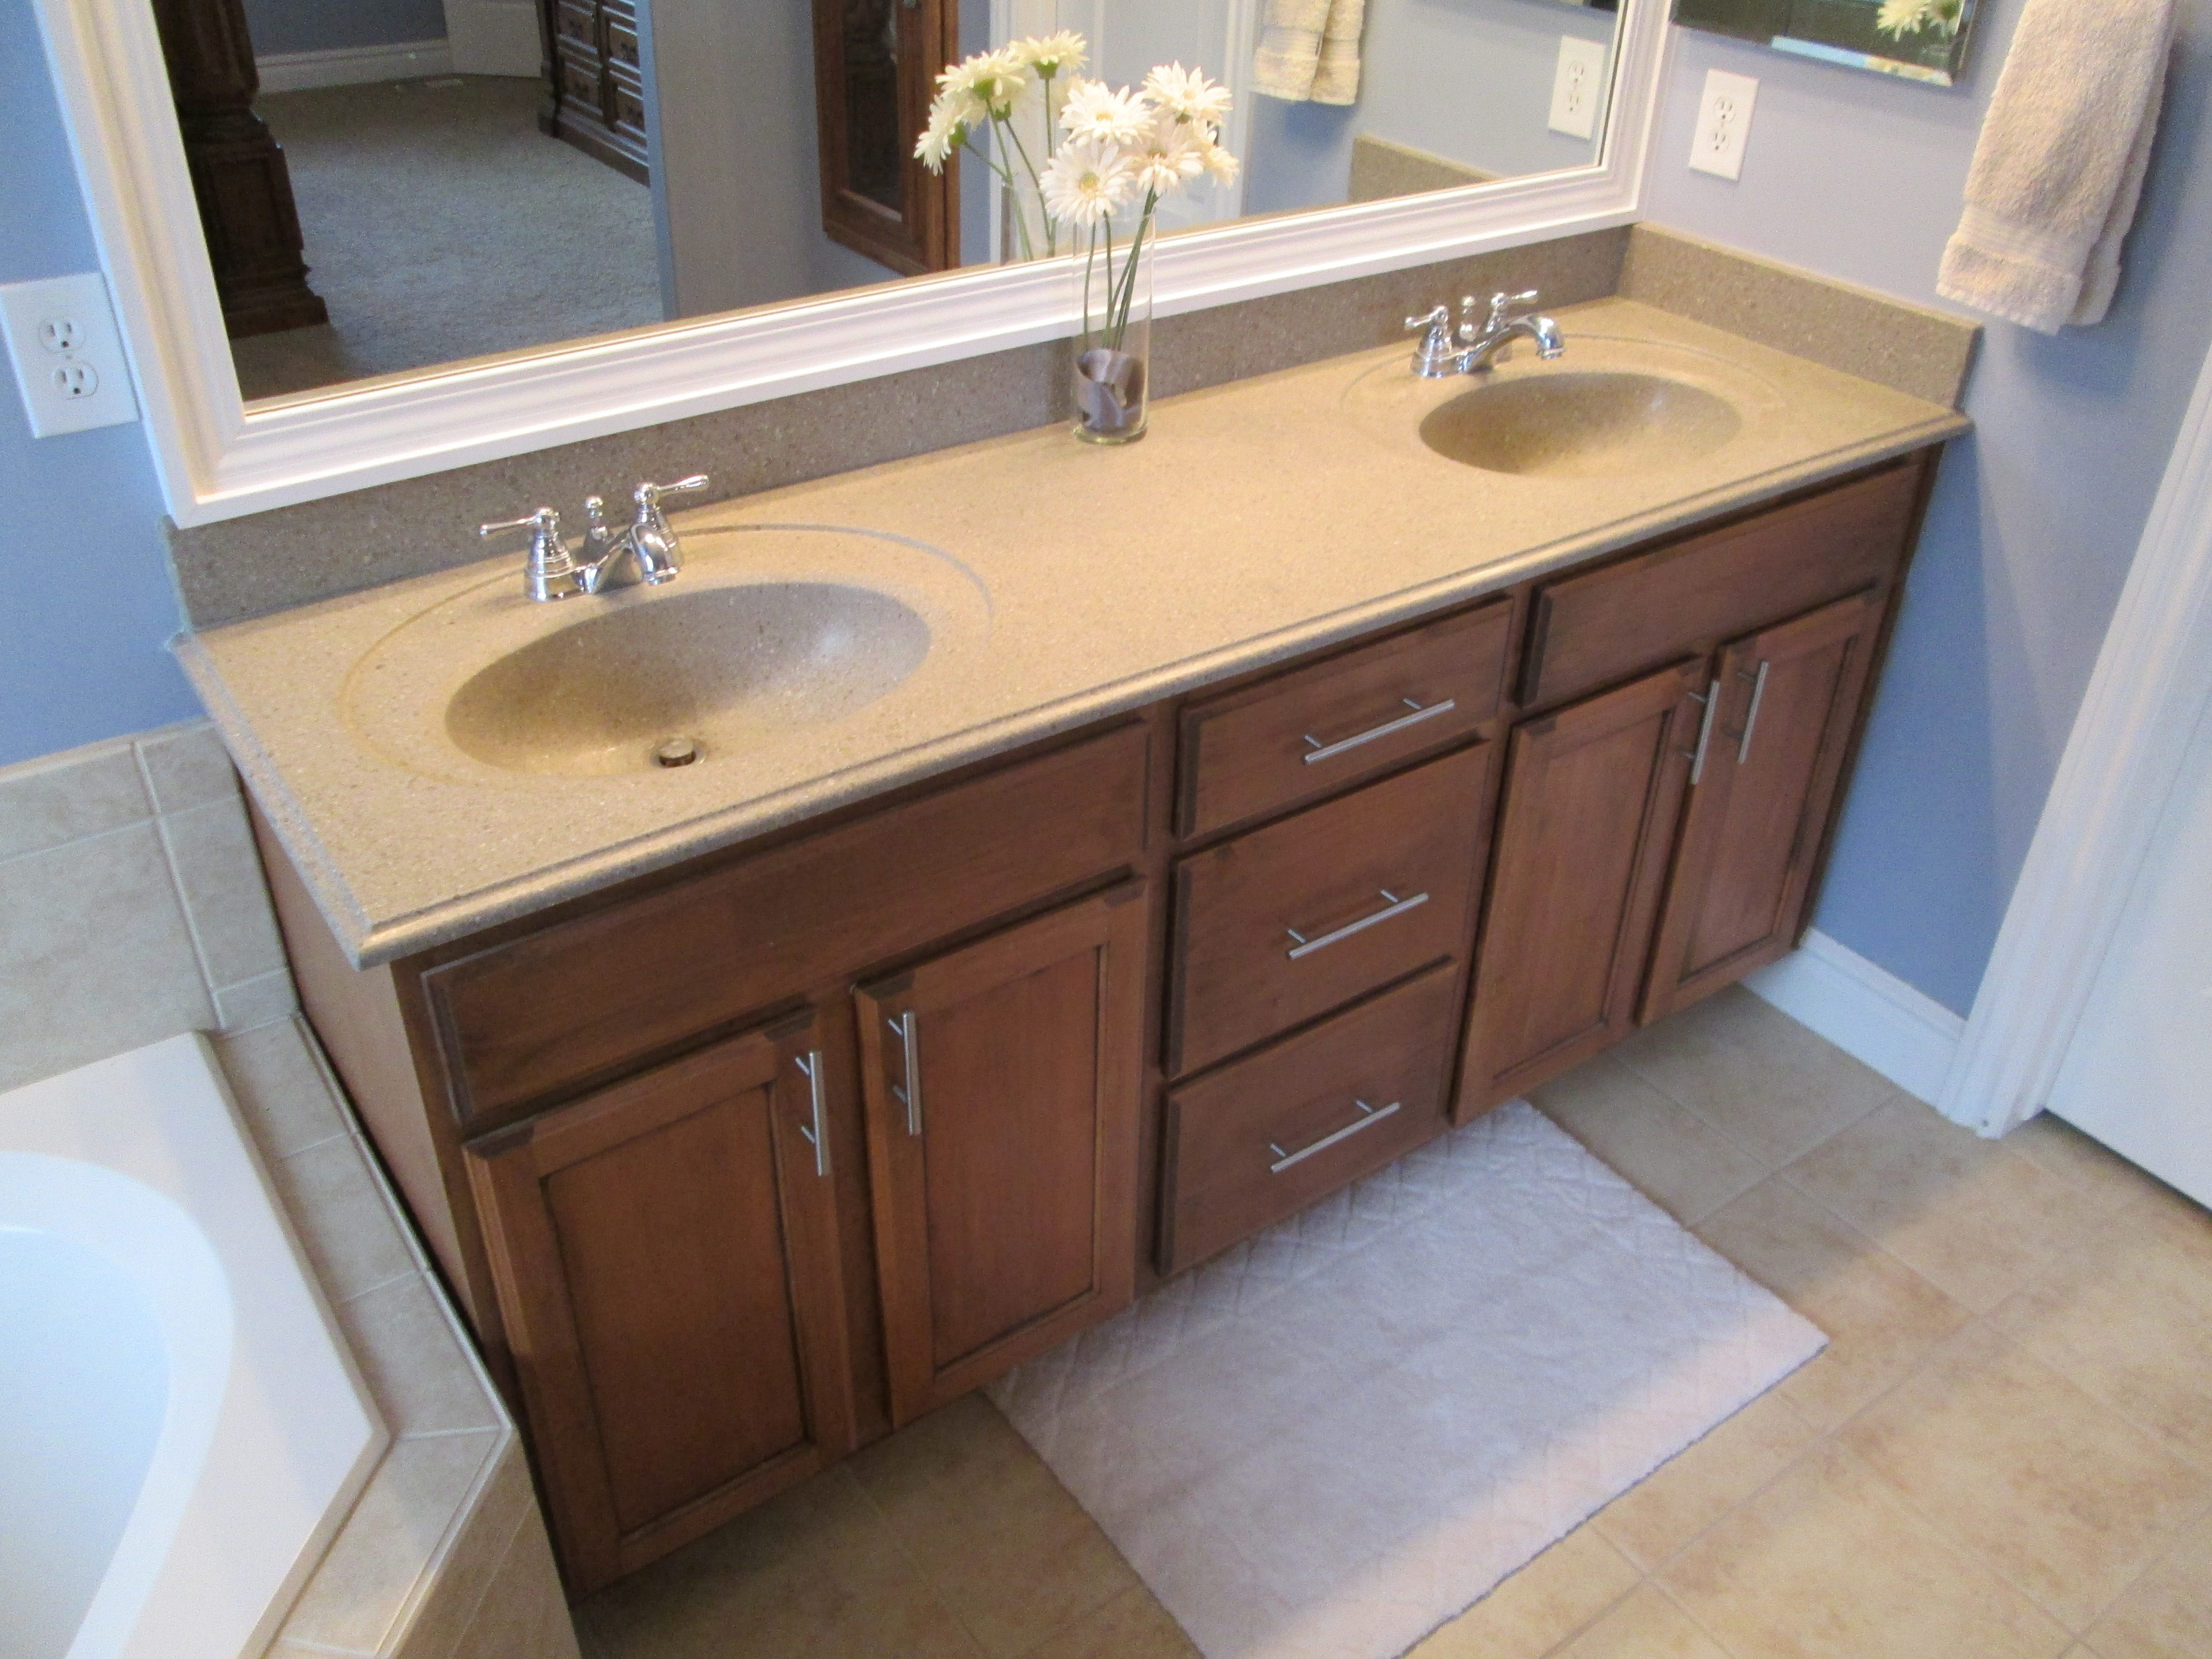 Bathroom Cabinets With Hardware